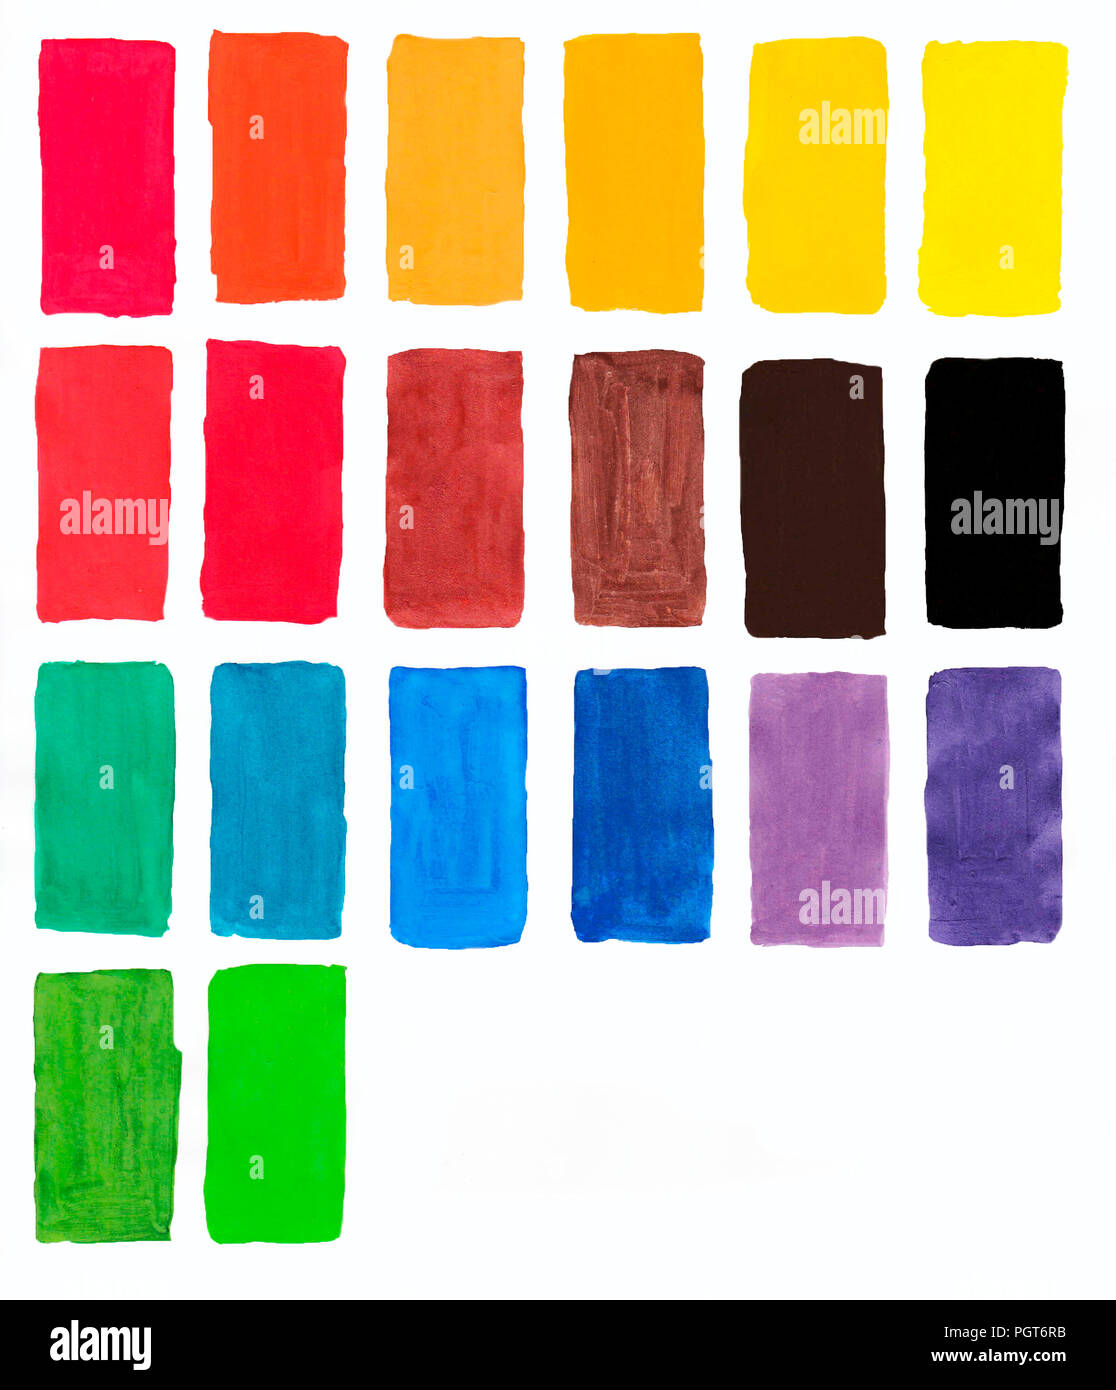 palette of gouache, all the colors of the rainbow colors list of colors squares, watercolor colors on paper - Stock Image